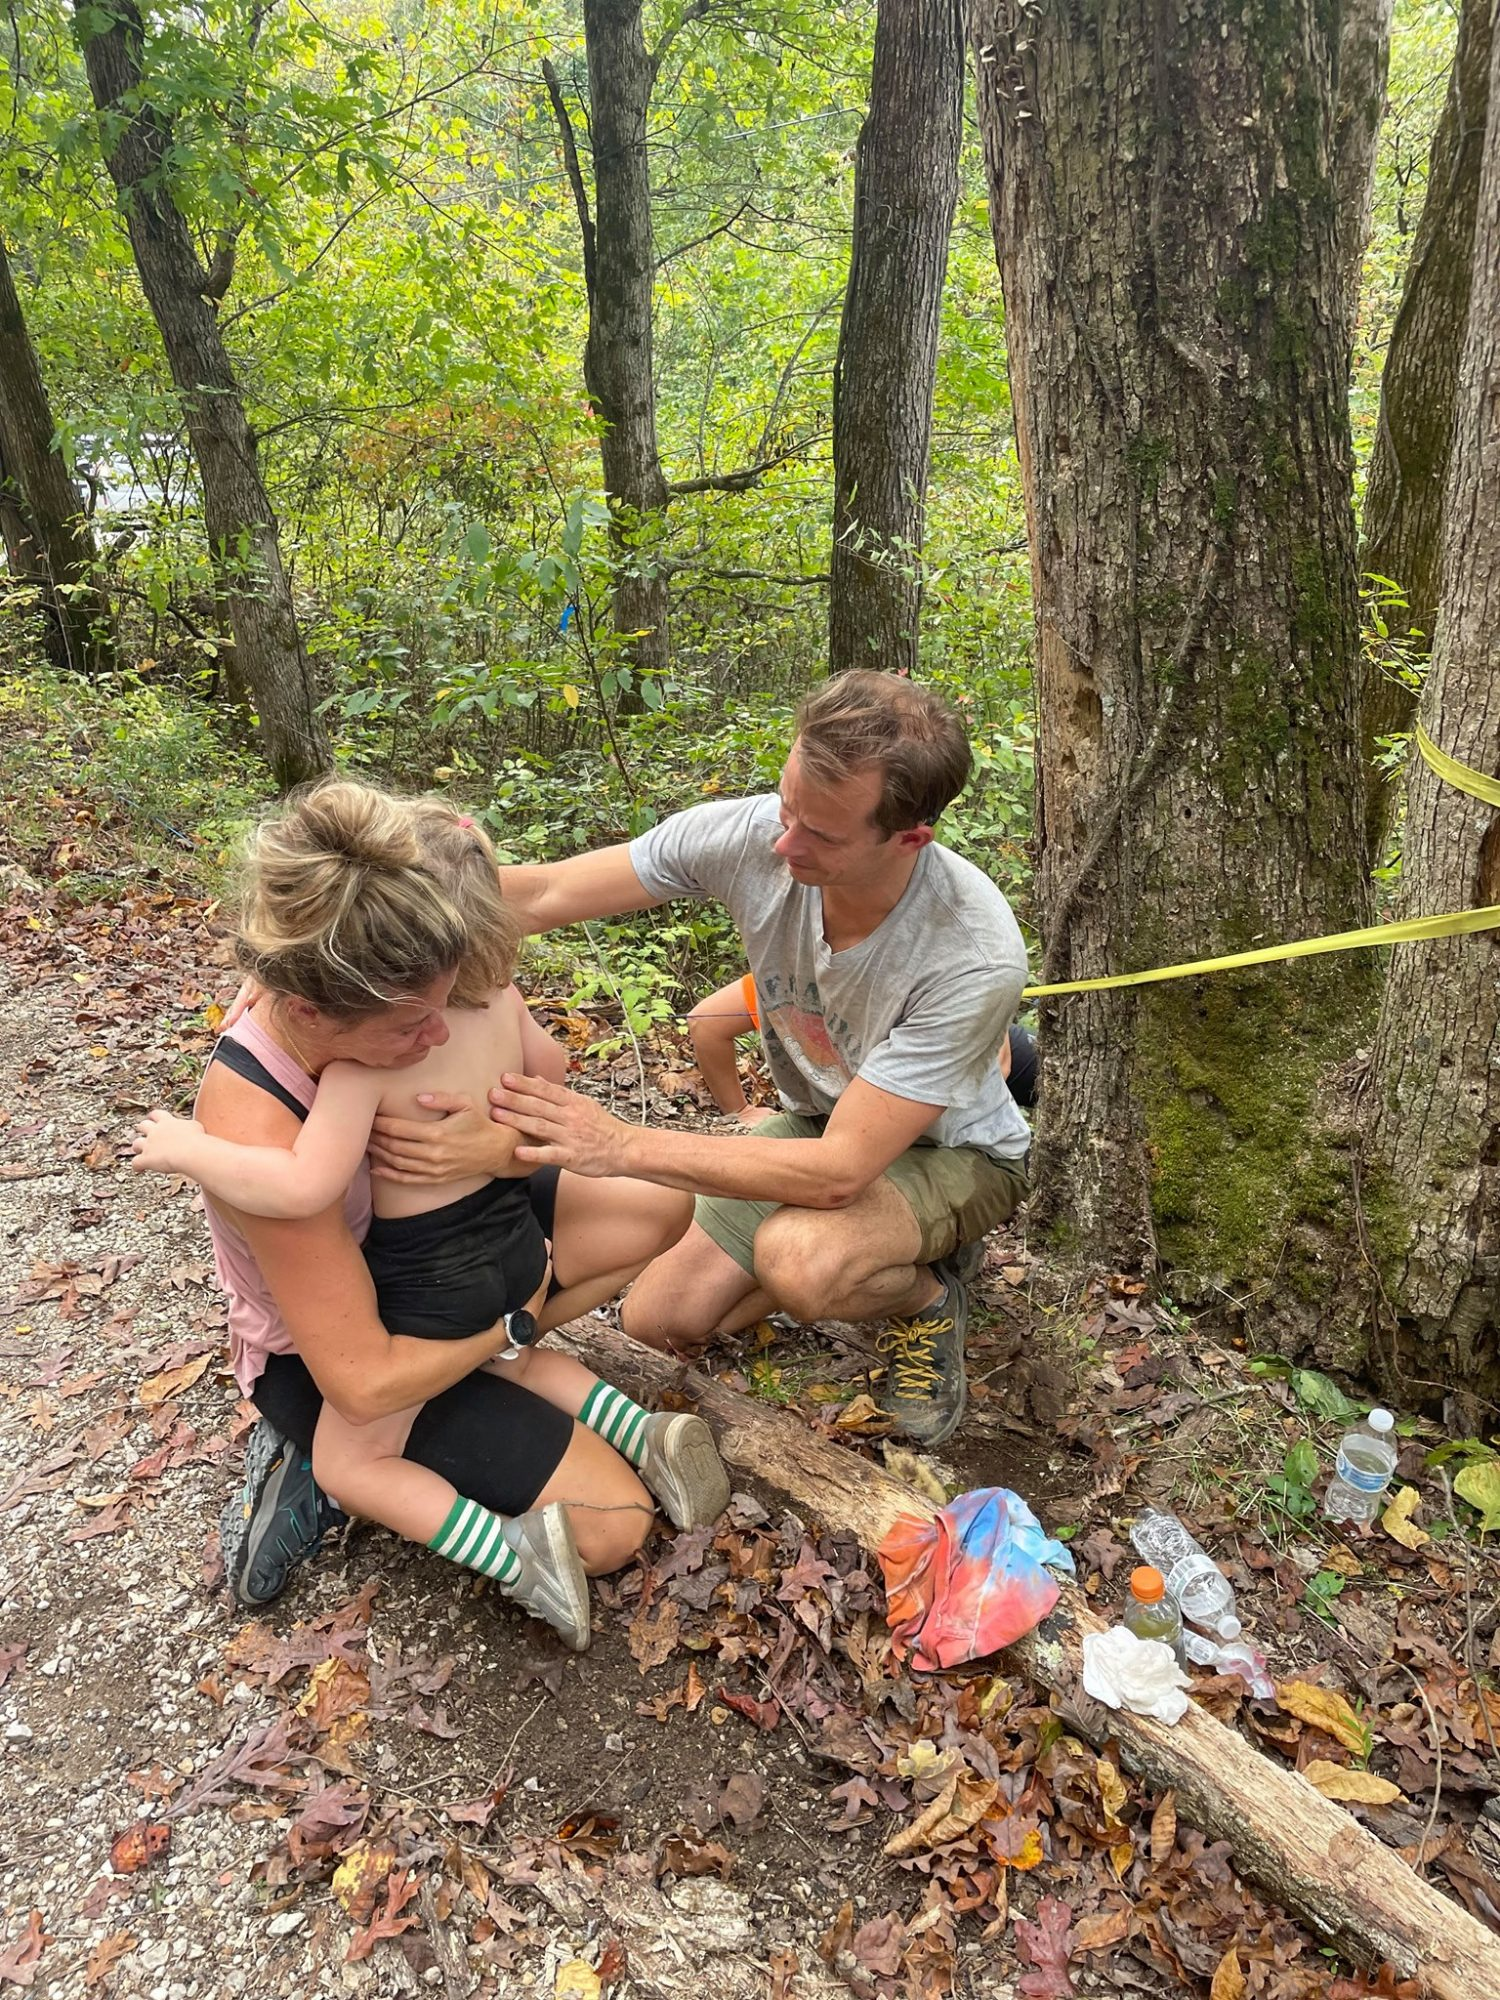 Boy Survives Fall from Cliff in Red River Gorge